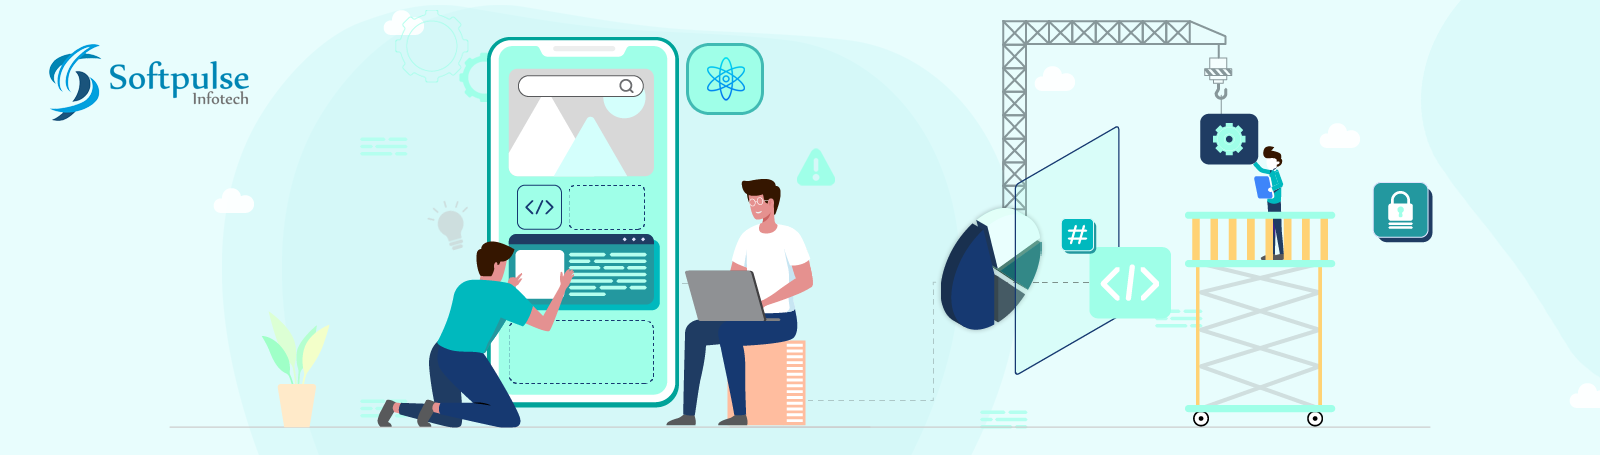 7 Common UX Design Mistakes to Avoid When Developing React Native App